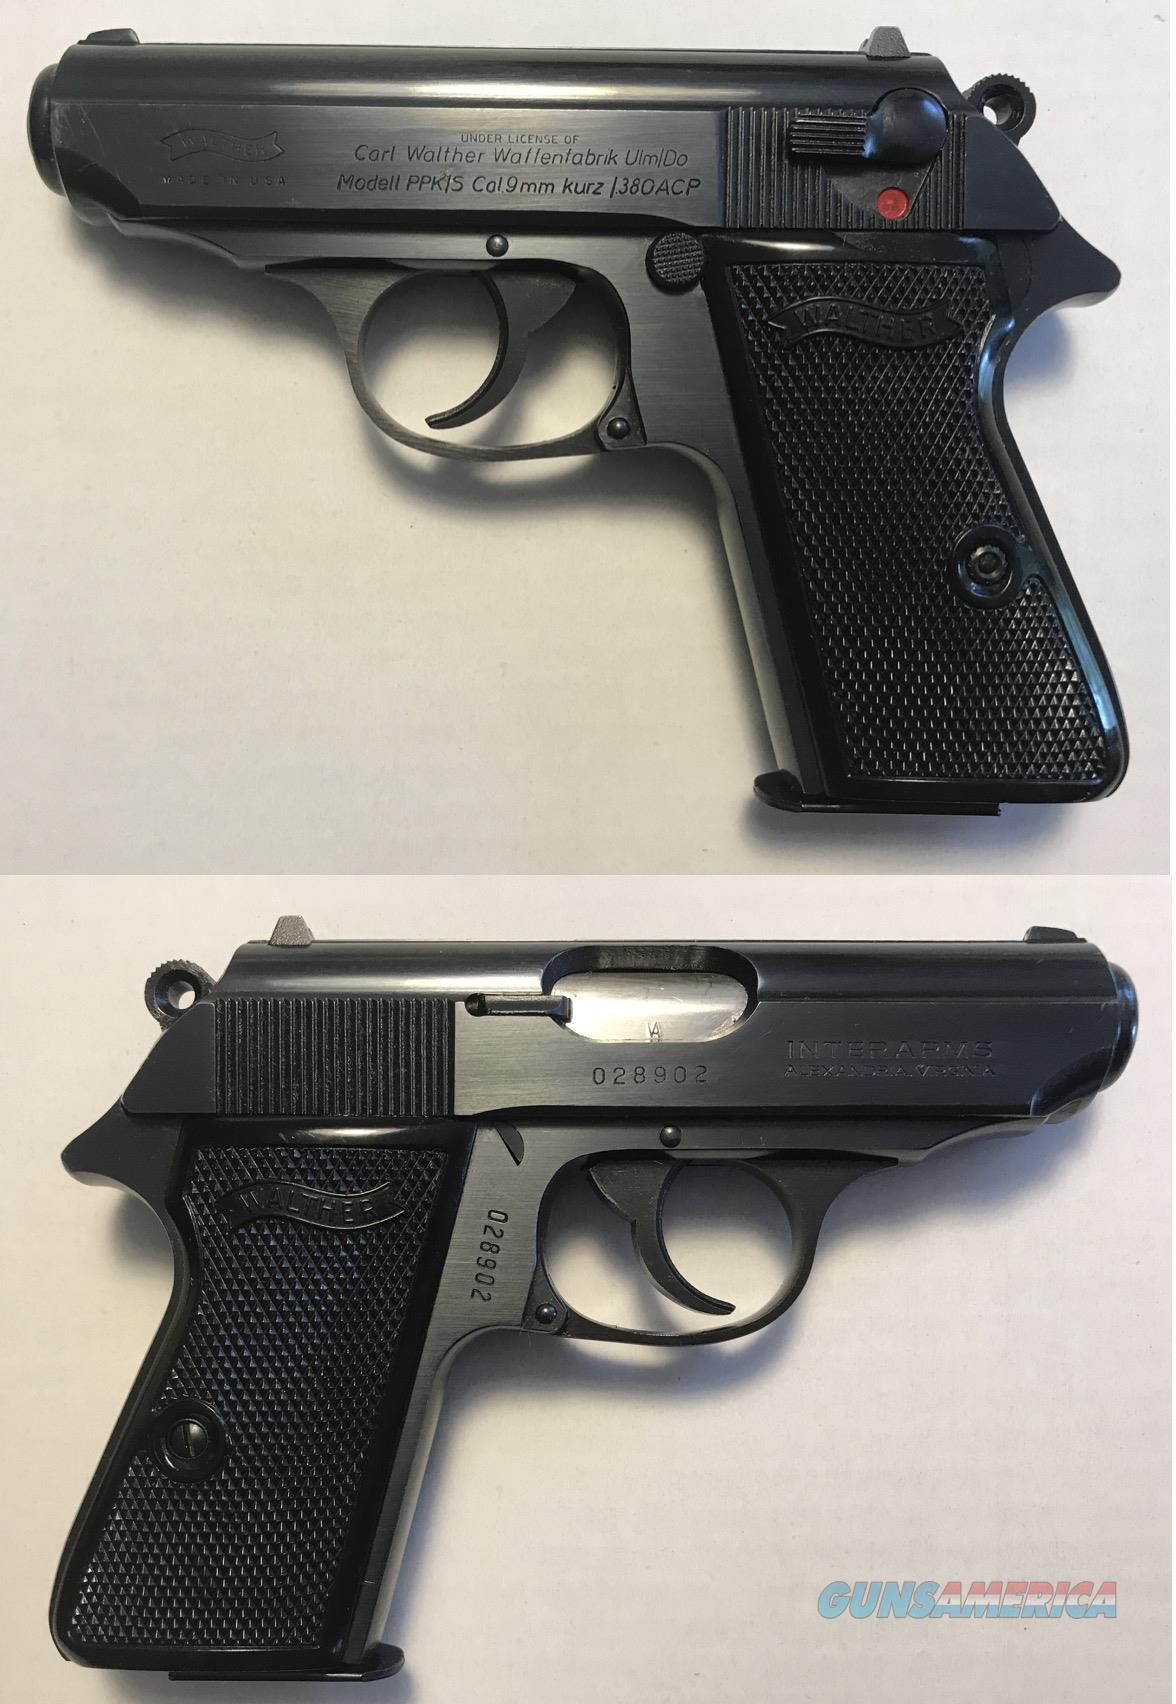 Walther/Interarms Model PPK/S  blue .380  Guns > Pistols > Walther Pistols > Post WWII > PPK Series